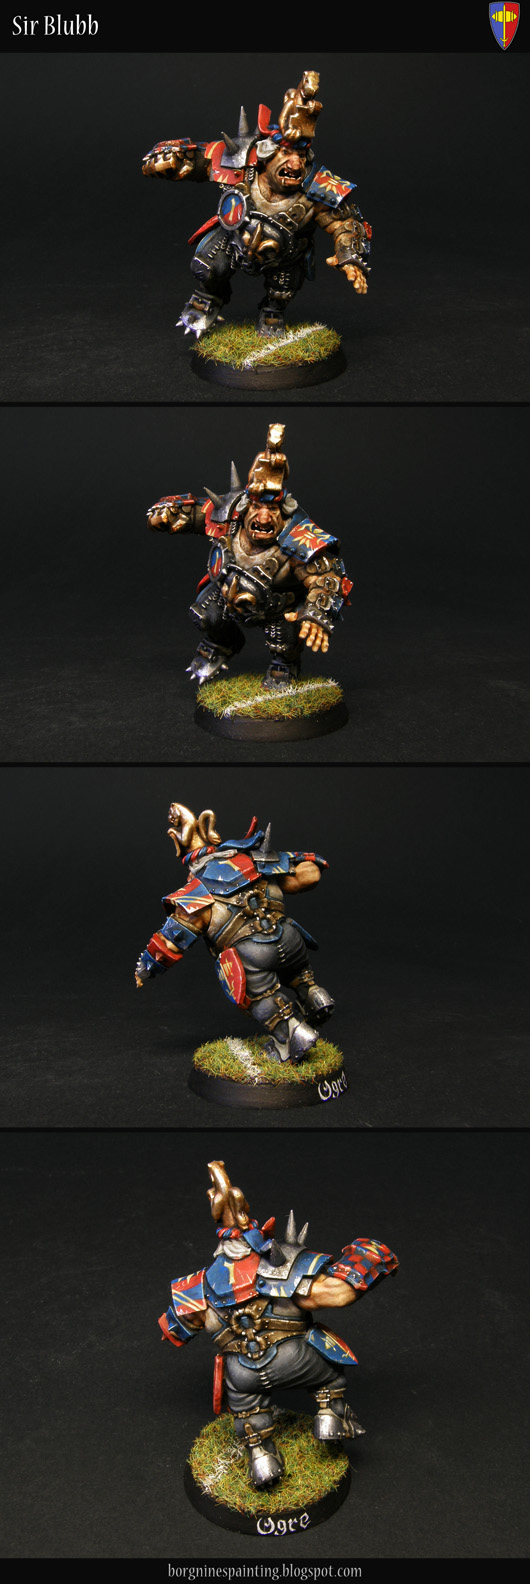 A Blood Bowl Ogre miniature converted and painted to fit in a Bretonnia-themed team - with an elaborate headcrest, a golden fleur-de-lys on his gutplate and shields bearing the heraldry of his team on the hips - visible from several angles.